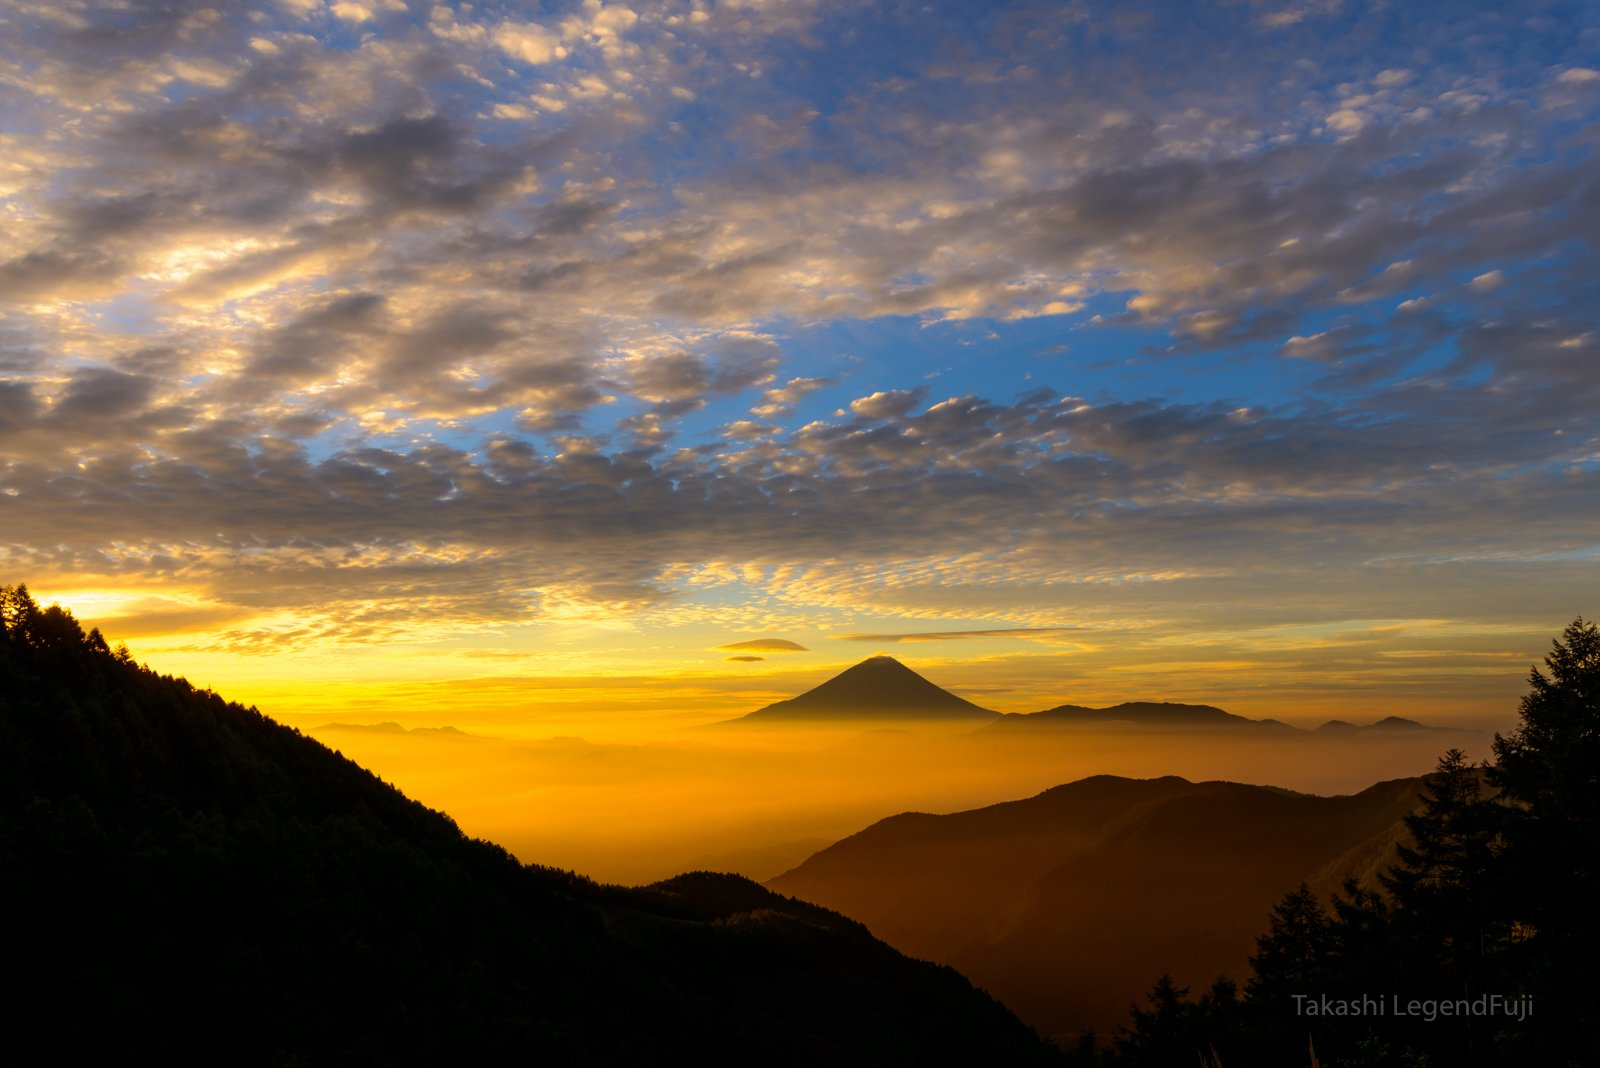 Fuji,mountain,cloud,Japan,valley,red,orange,sky,morning,sunshine,sunrise,beautiful,amazing,, Takashi